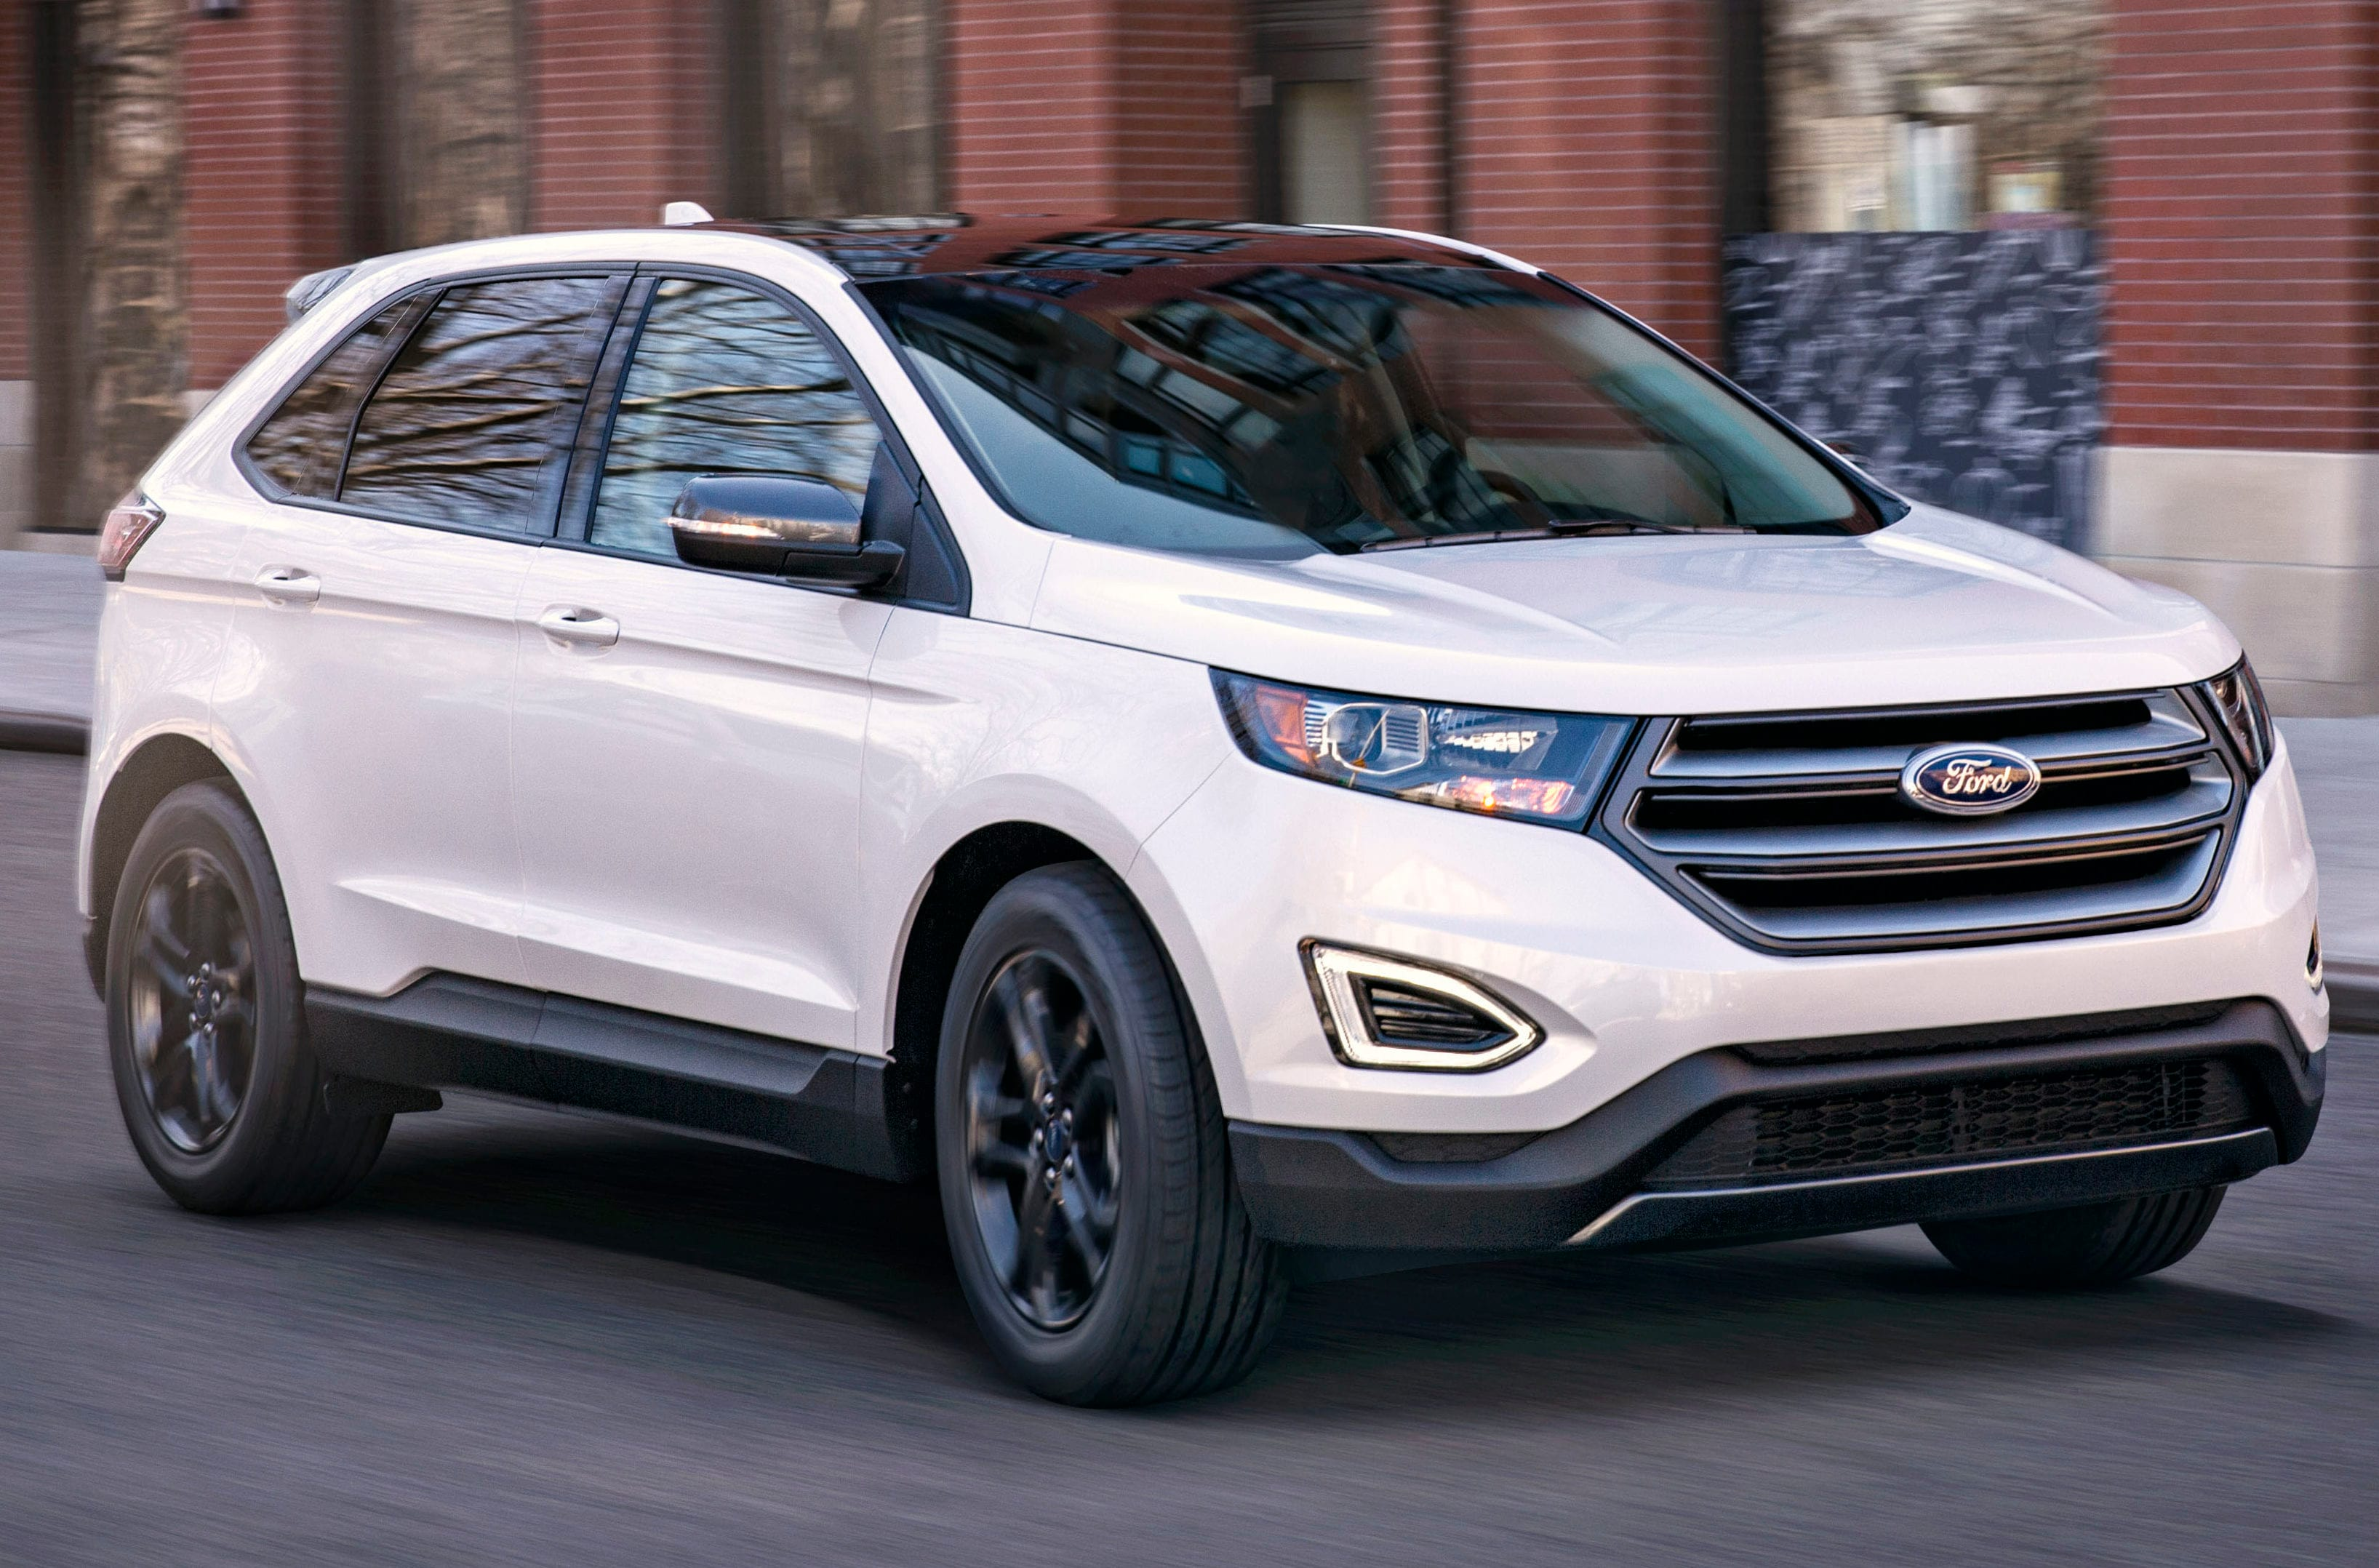 Power Hungry Engines The  Ford Edge Suv Is The Perfect Option For Those Looking Toward The Future From A Hands Free Foot Activated Liftgate That